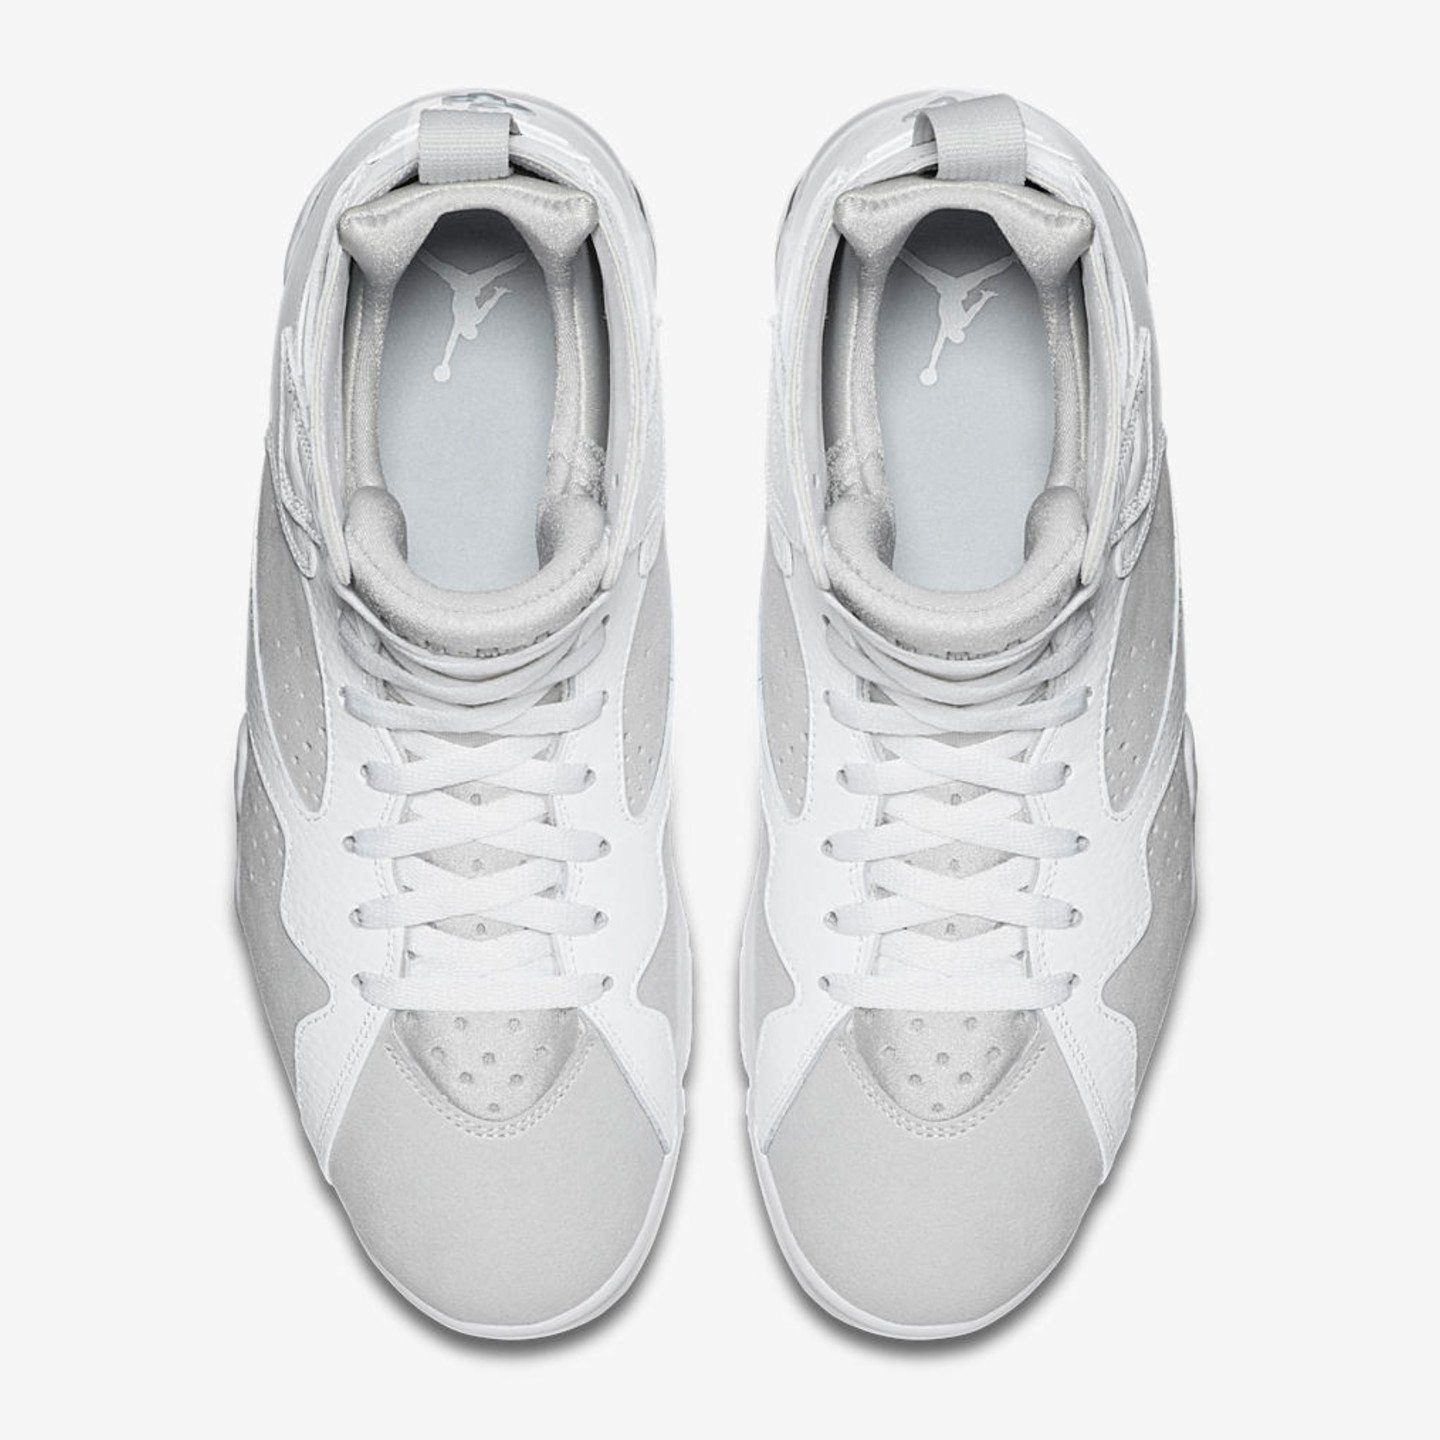 Jordan Air Jordan 7 Retro 'Pure Money' White / Metallic Silver 304775-120